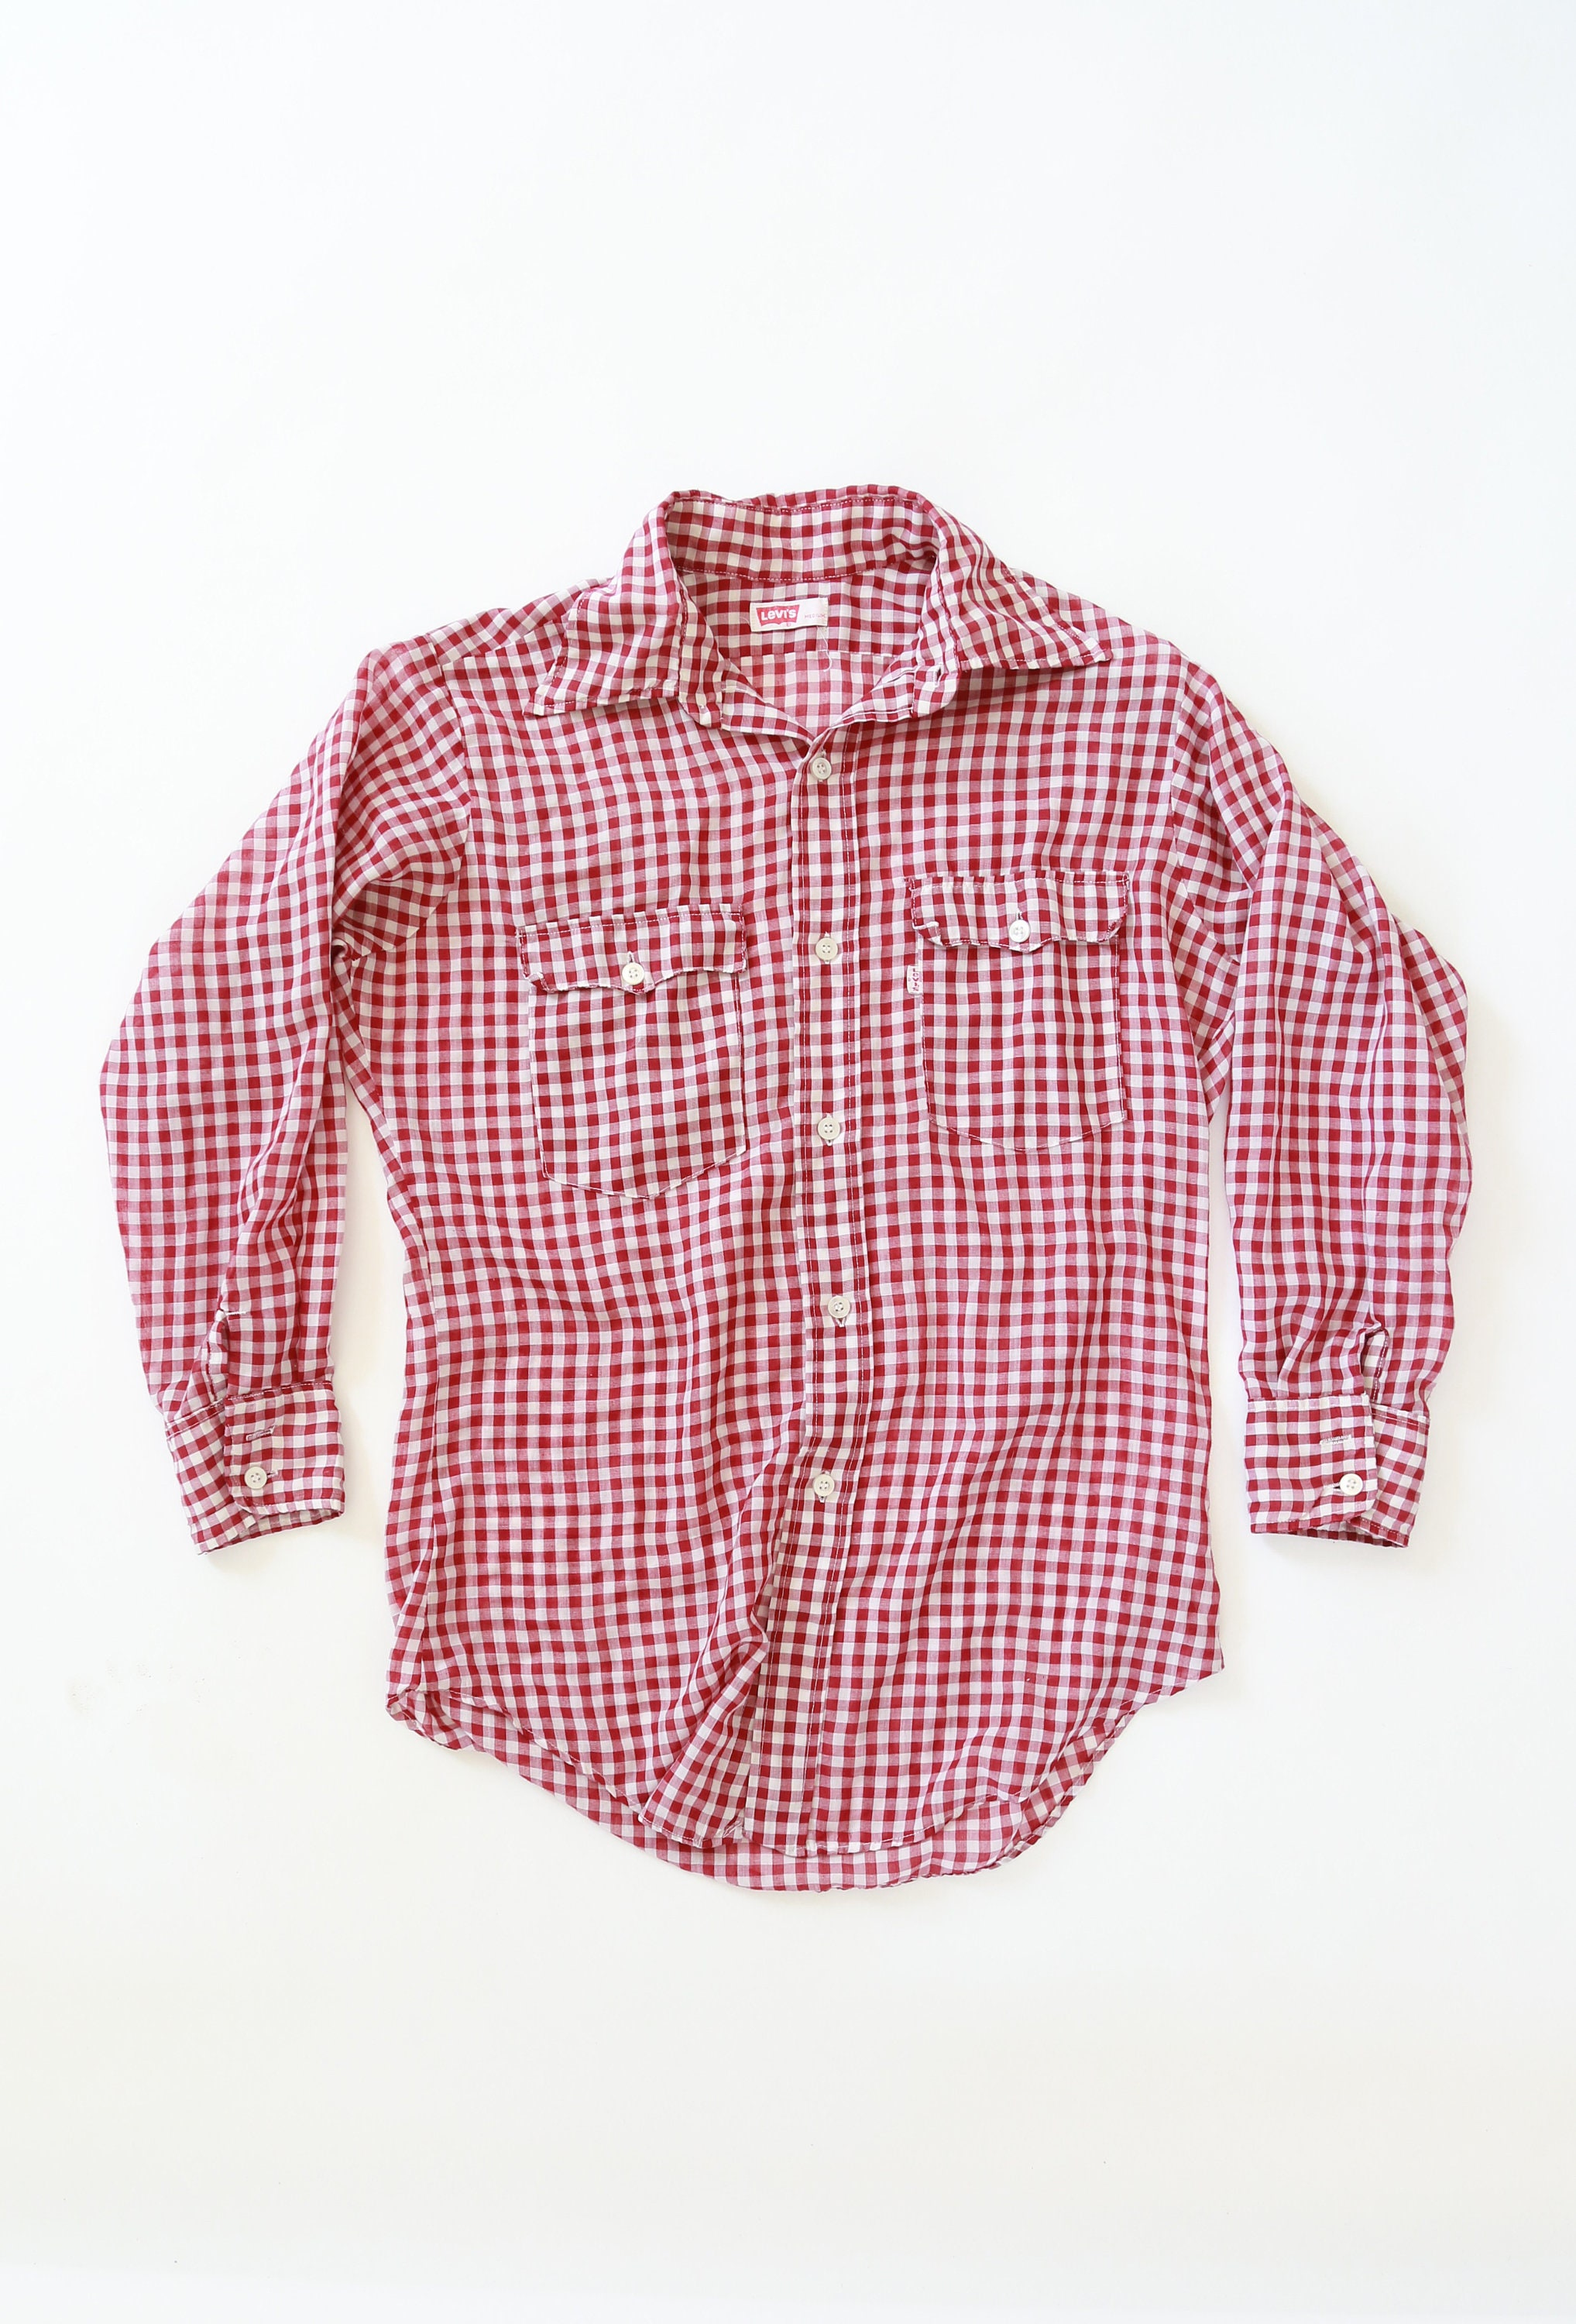 88fd553e2aa44 Levis Gingham shirt | Vintage 70s Levis Gingham Western red Work ...